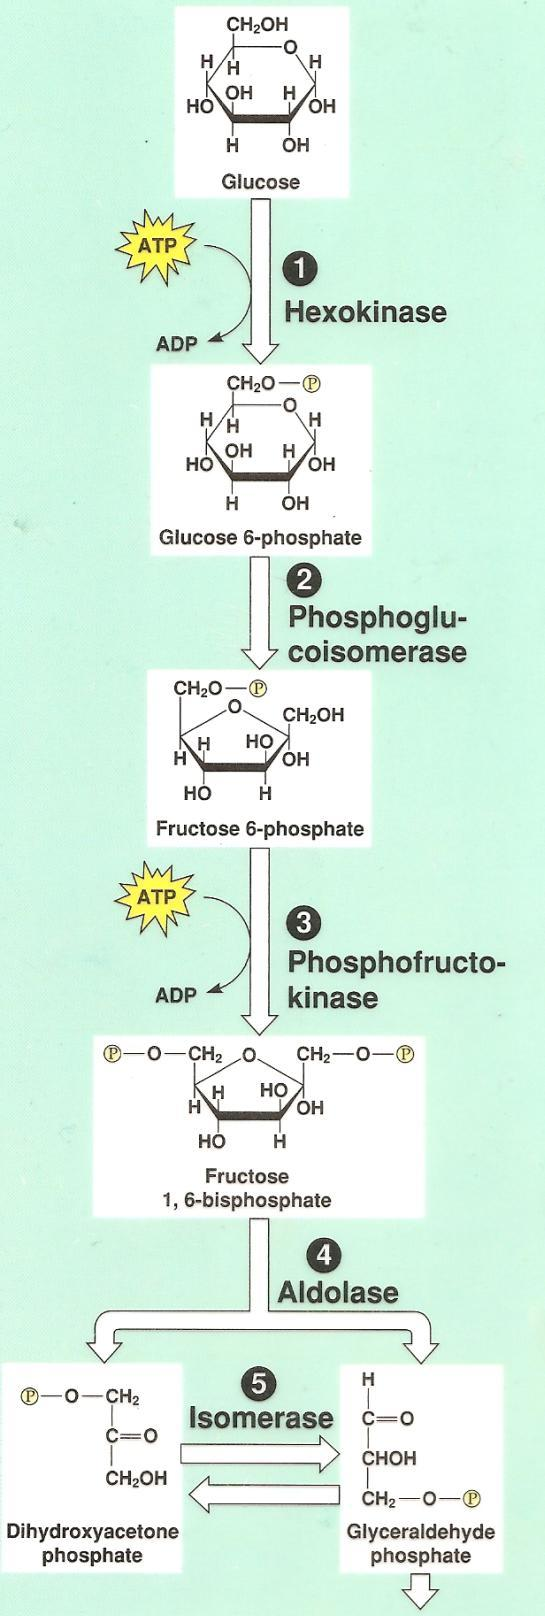 Q: Do you think glycolysis can still work?